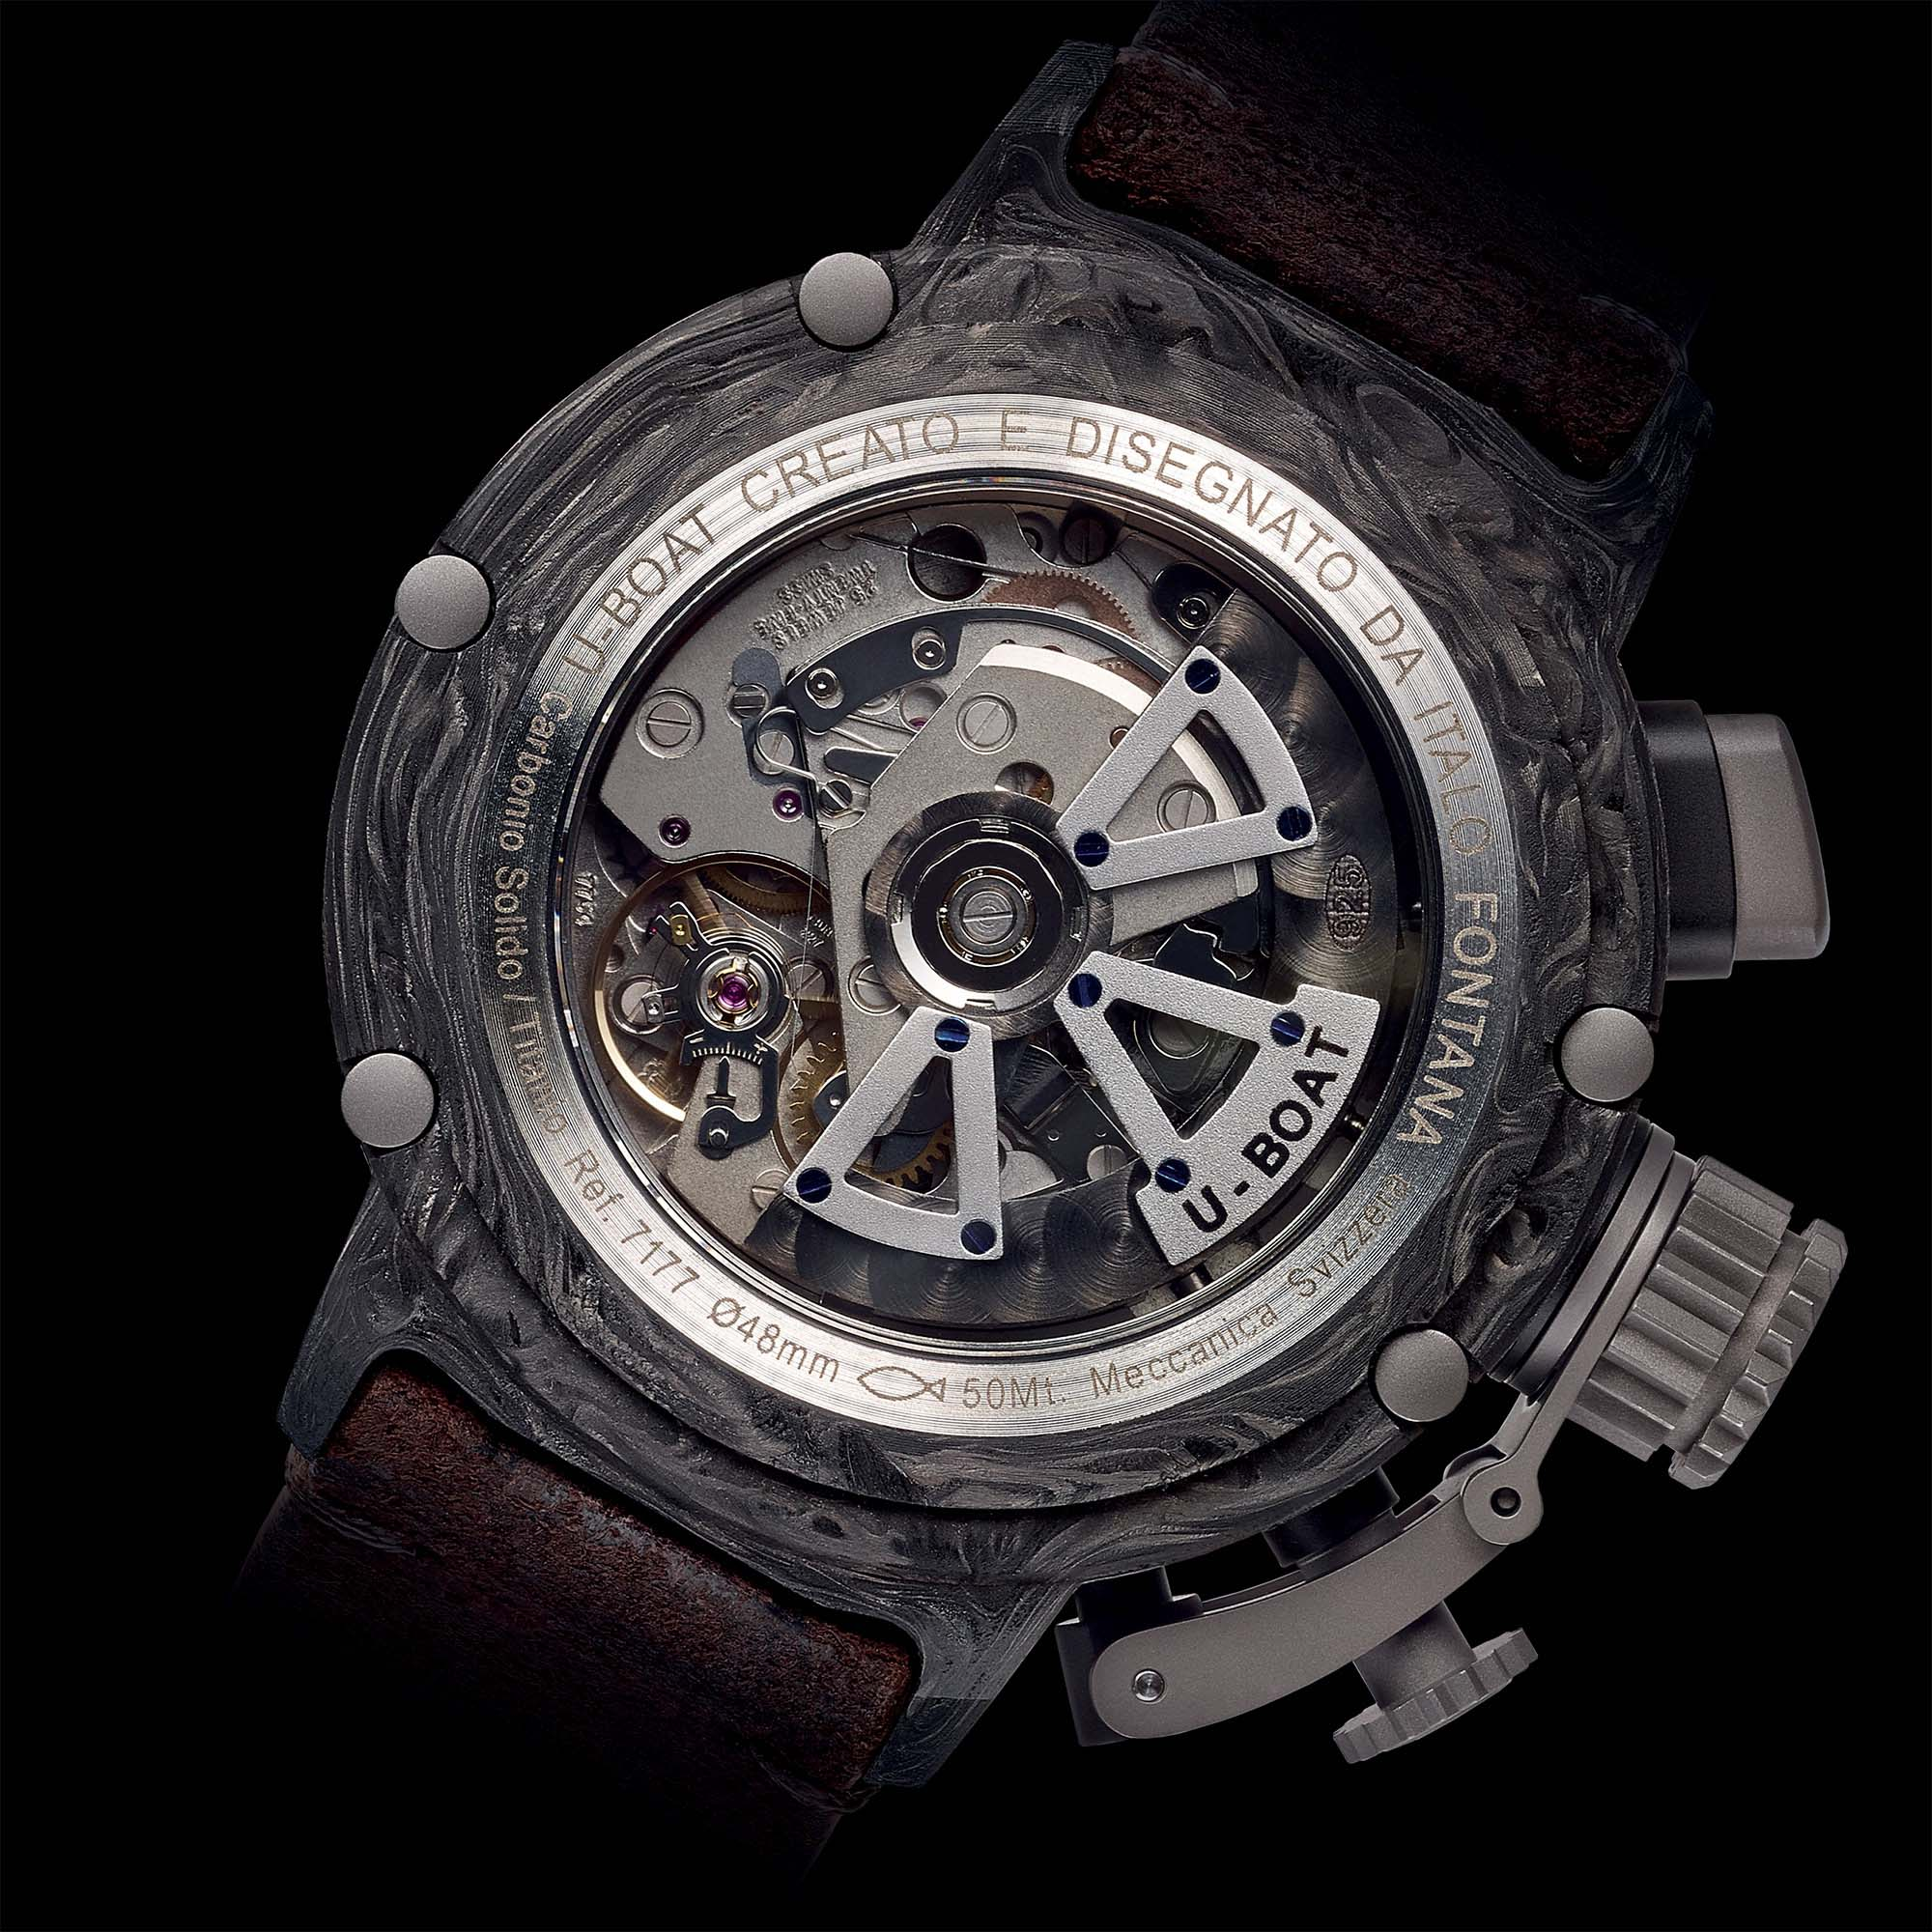 U Boat Carbon Gmt Movement 7750